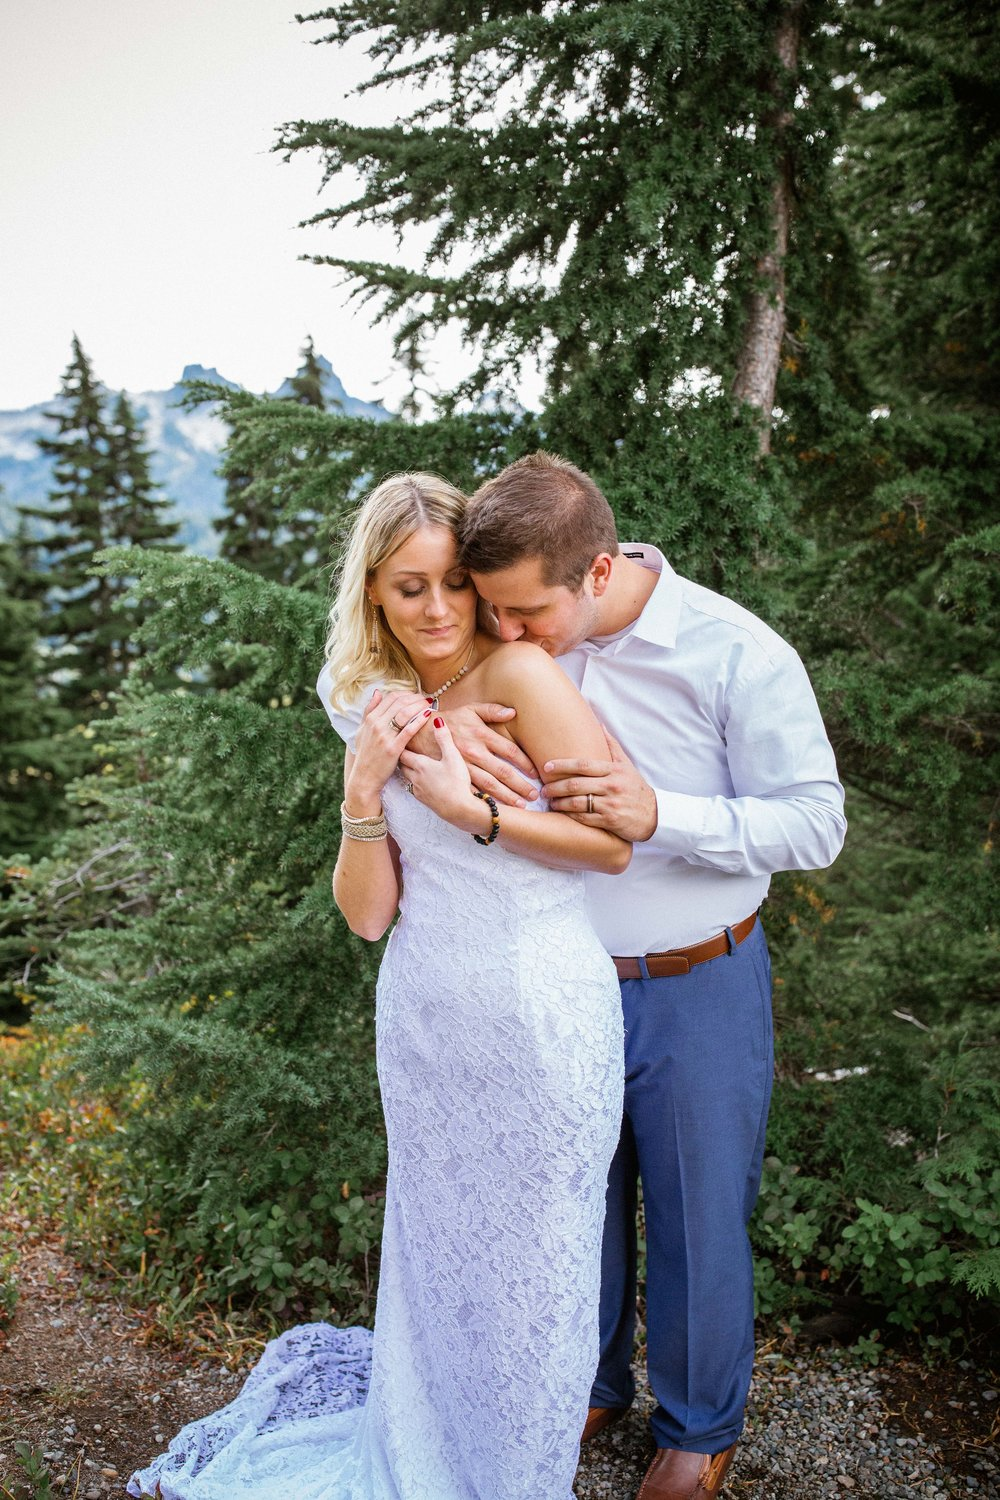 Ashley&Josh-Sneak Peek!BLOG-46.jpg